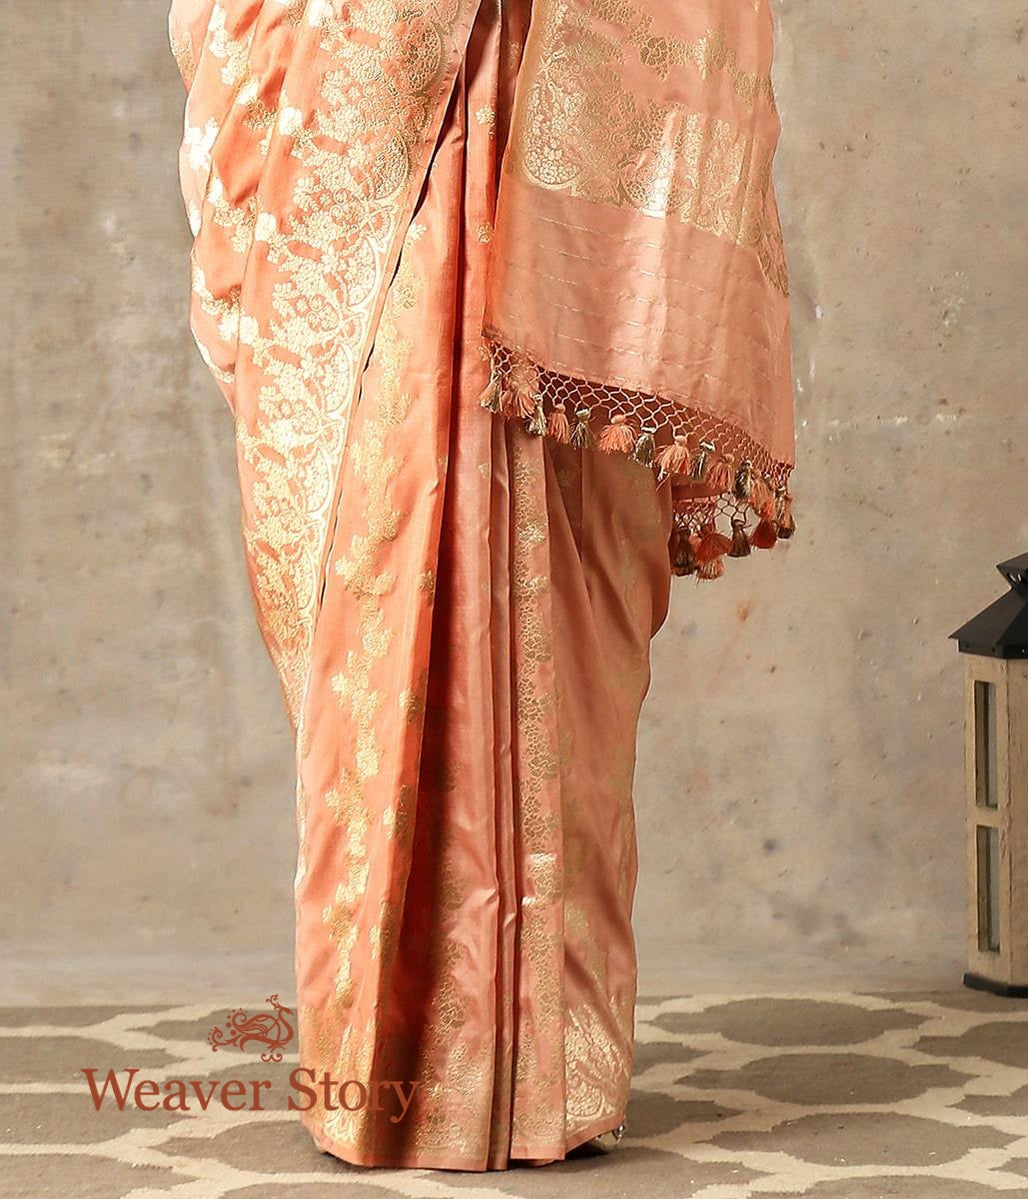 Handwoven Dull Peach Banarasi Saree with Floral Scalloped Border